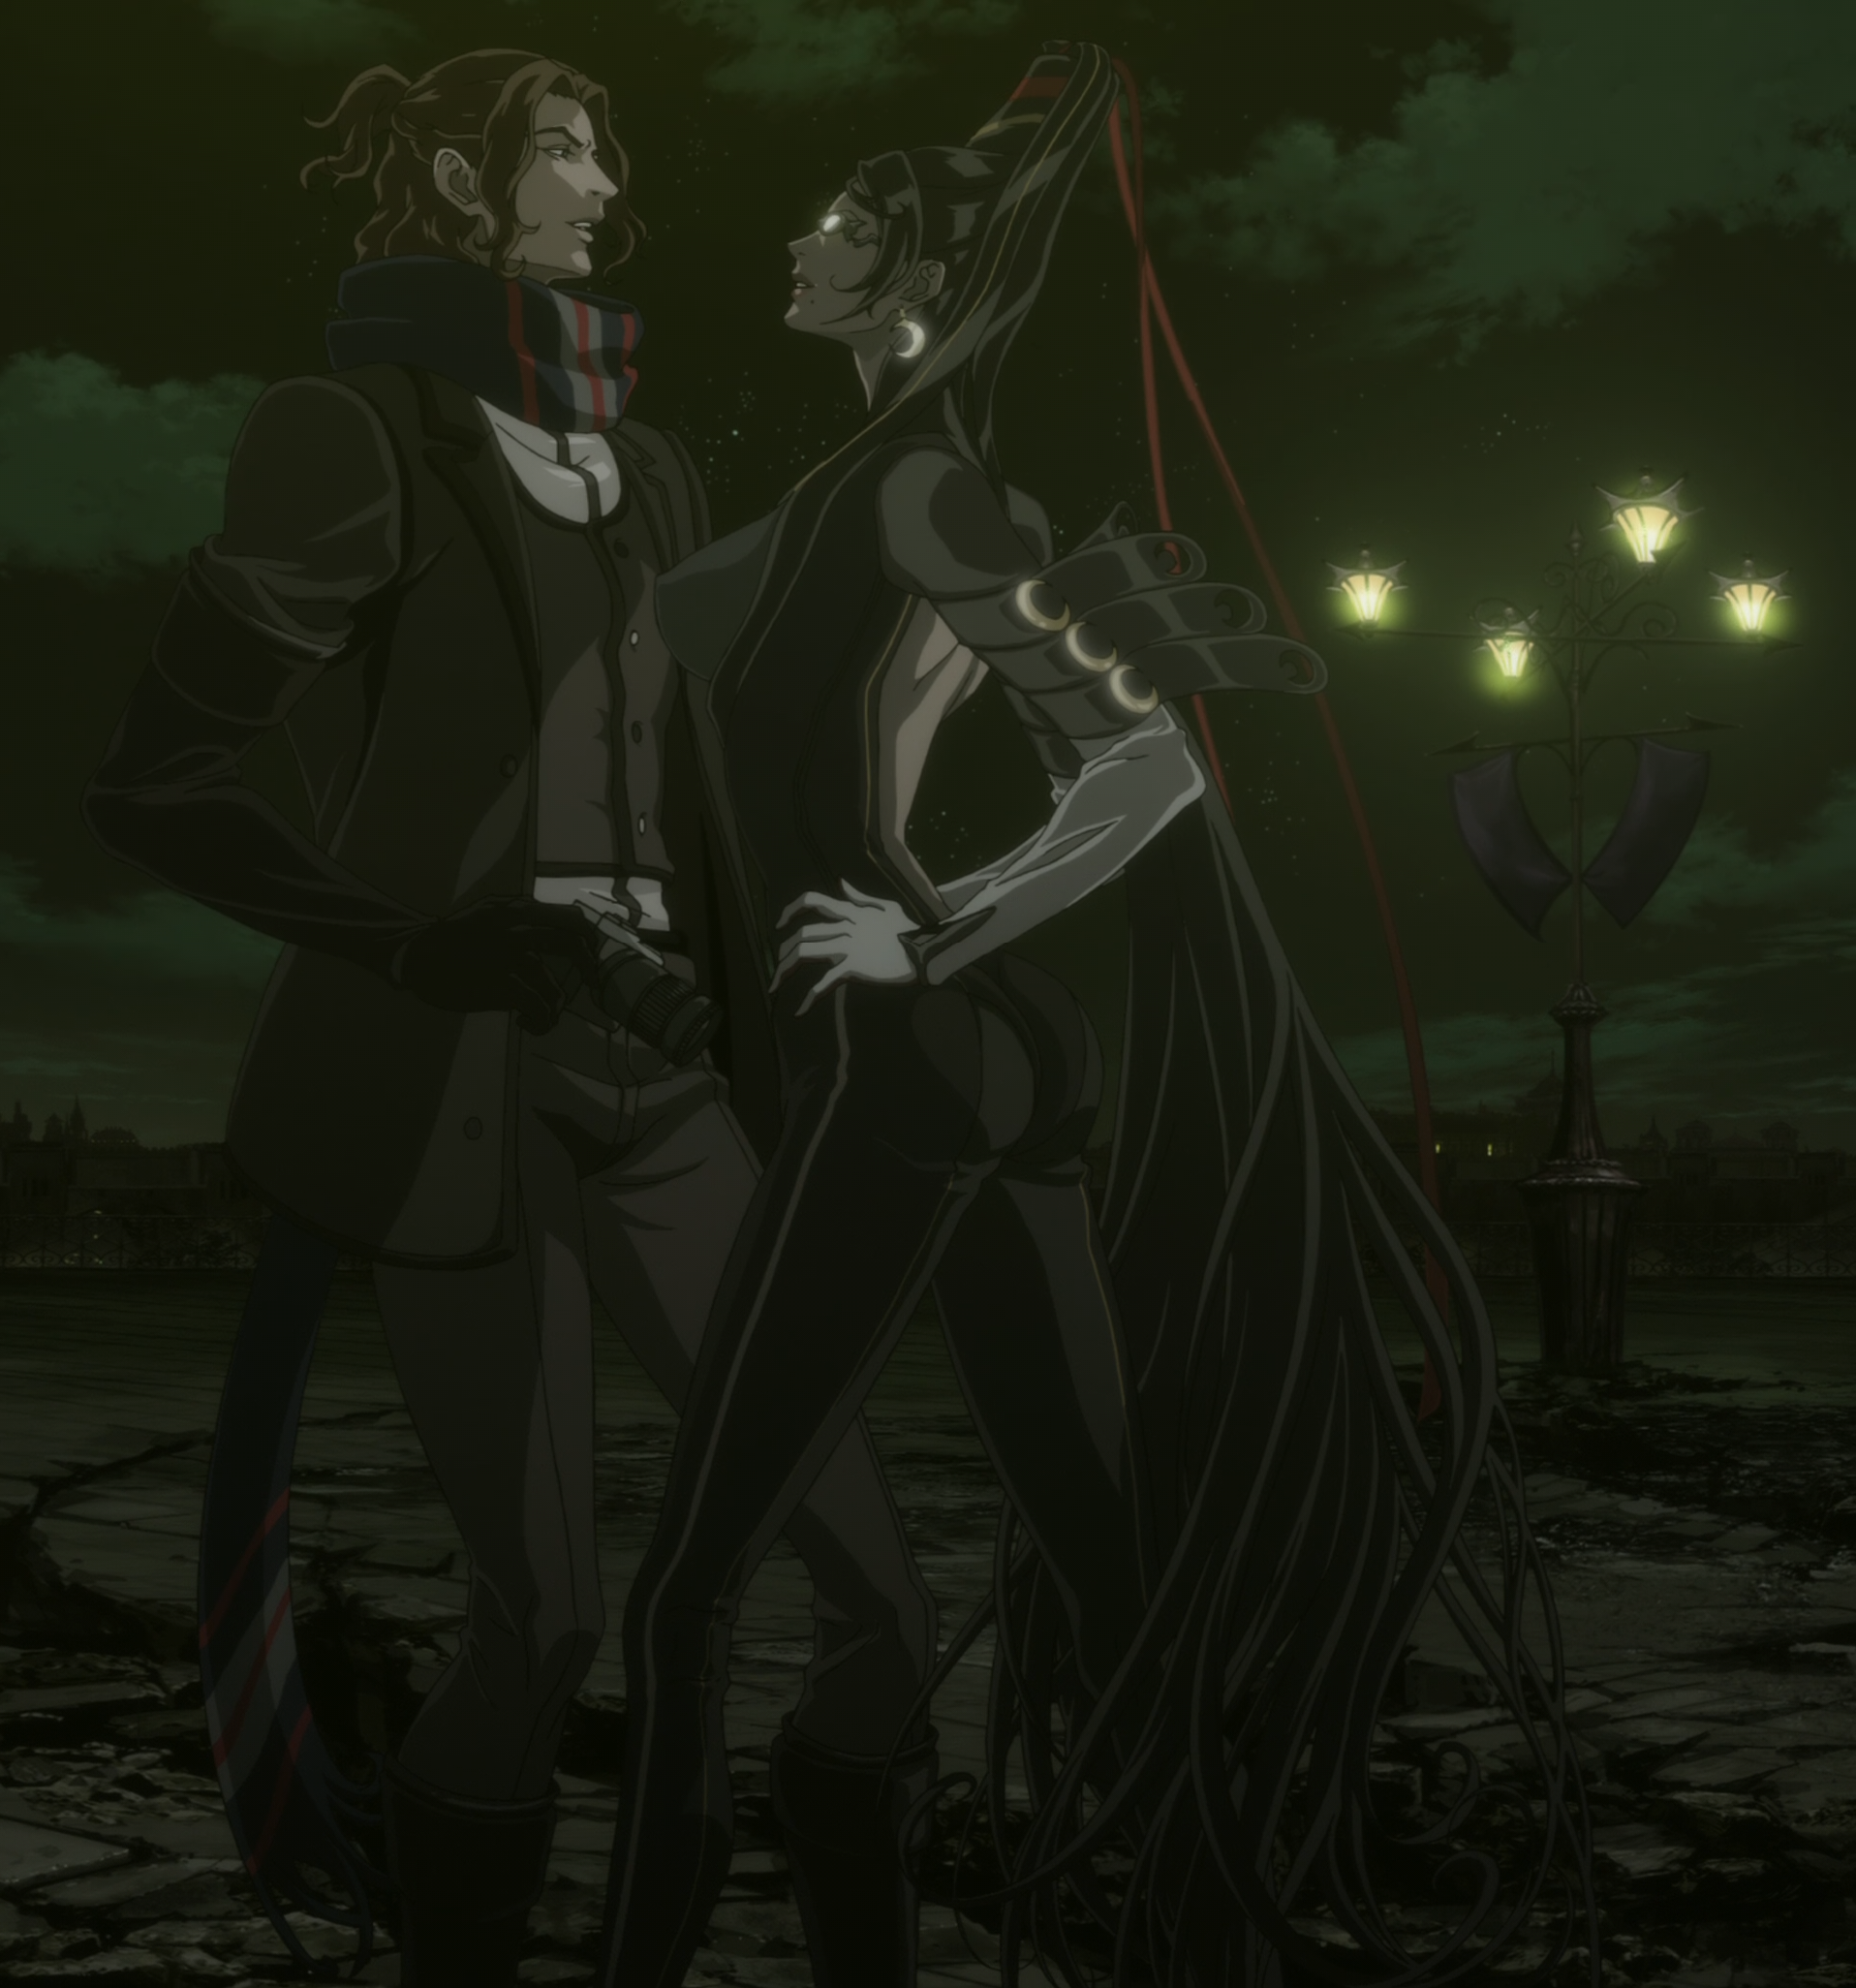 Bloody Fate flirting with Luka